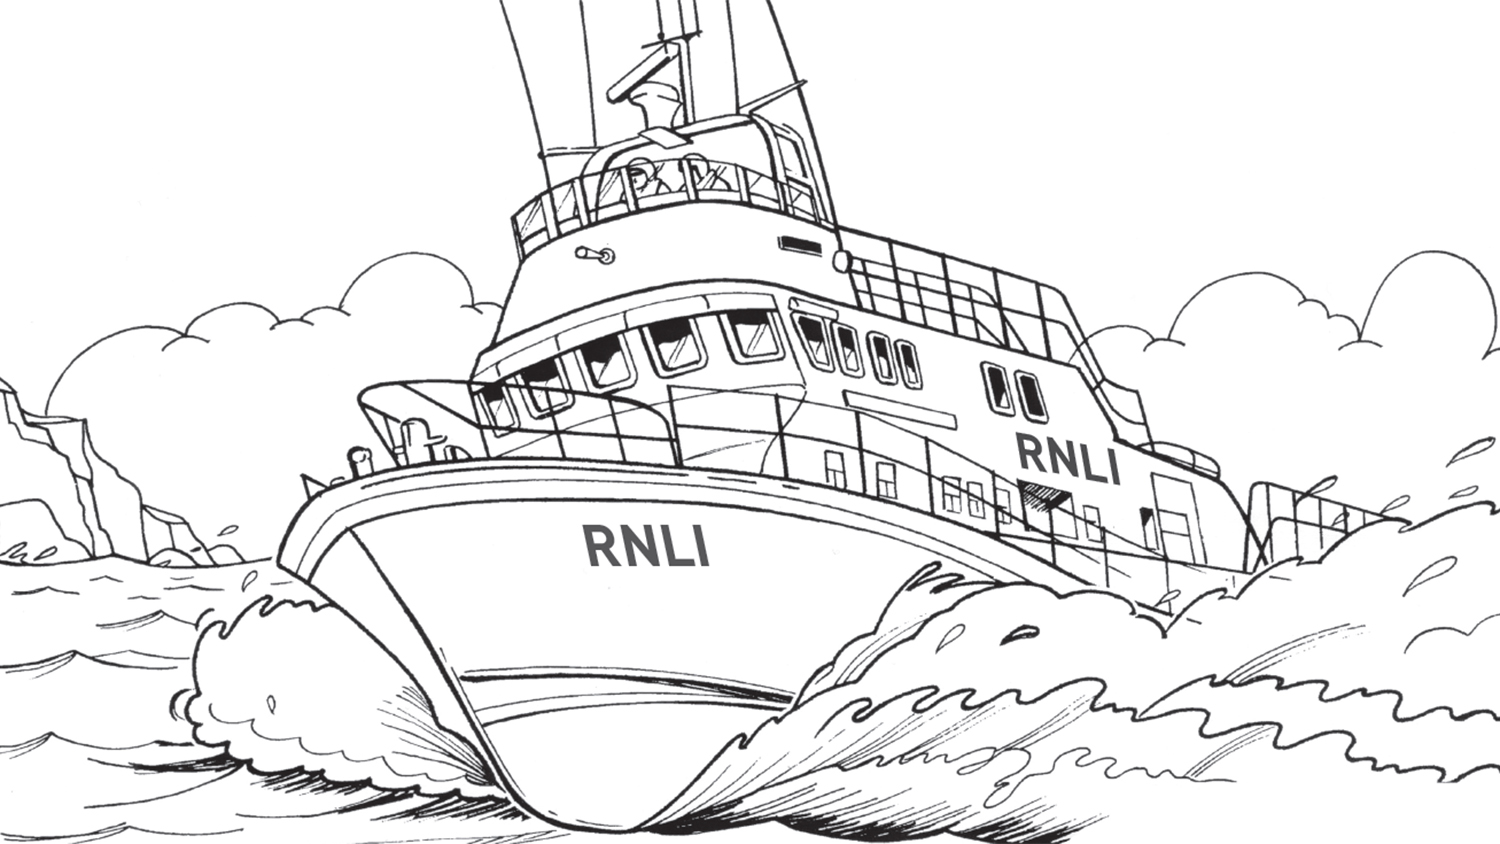 RNLI Severn lifeboat line drawing